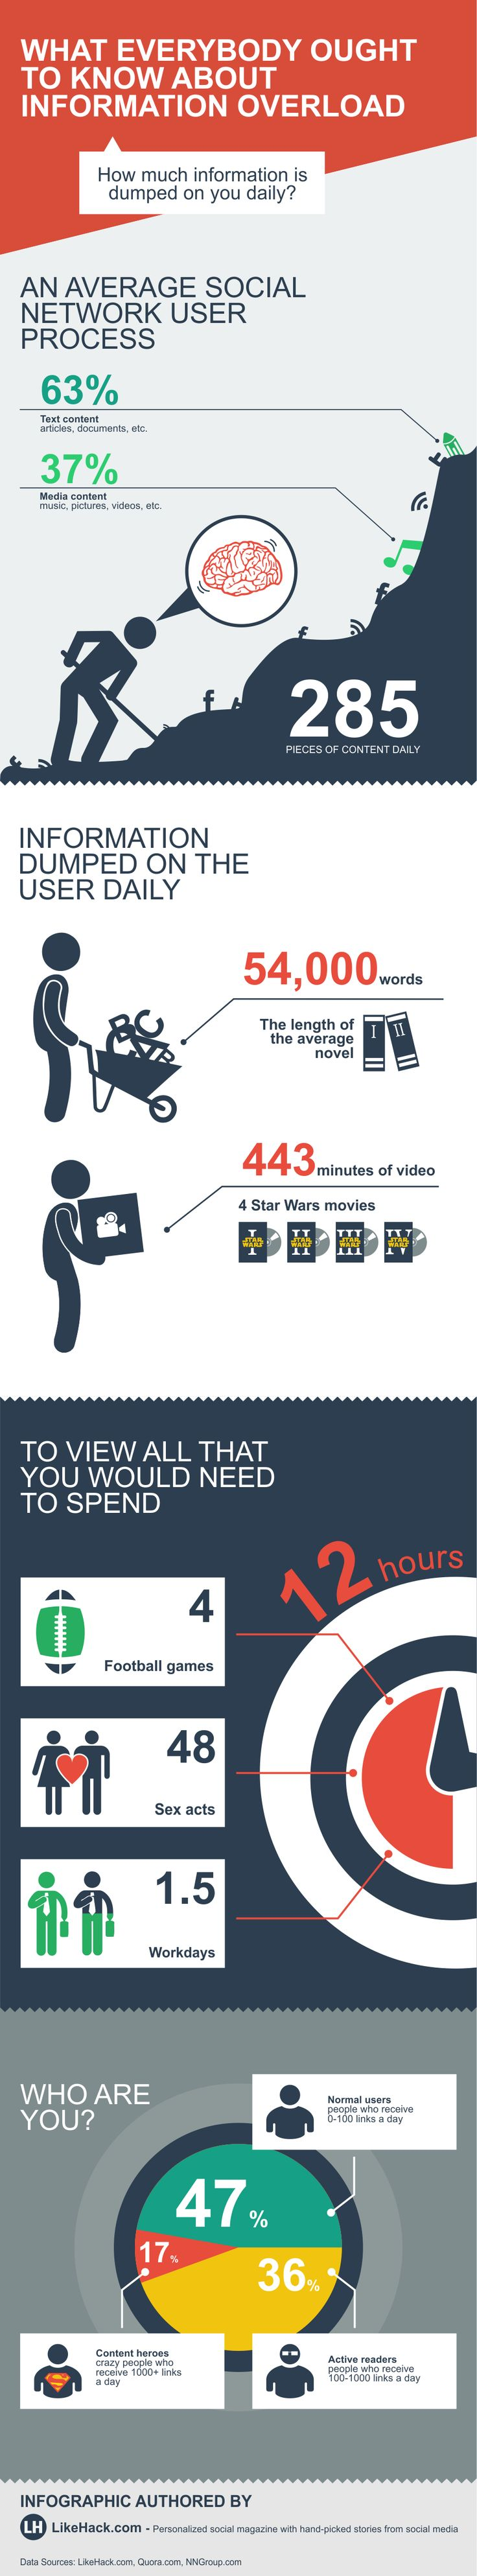 Social Media Overload - How Much Information Do We Process Each Day? [INFOGRAPHIC]